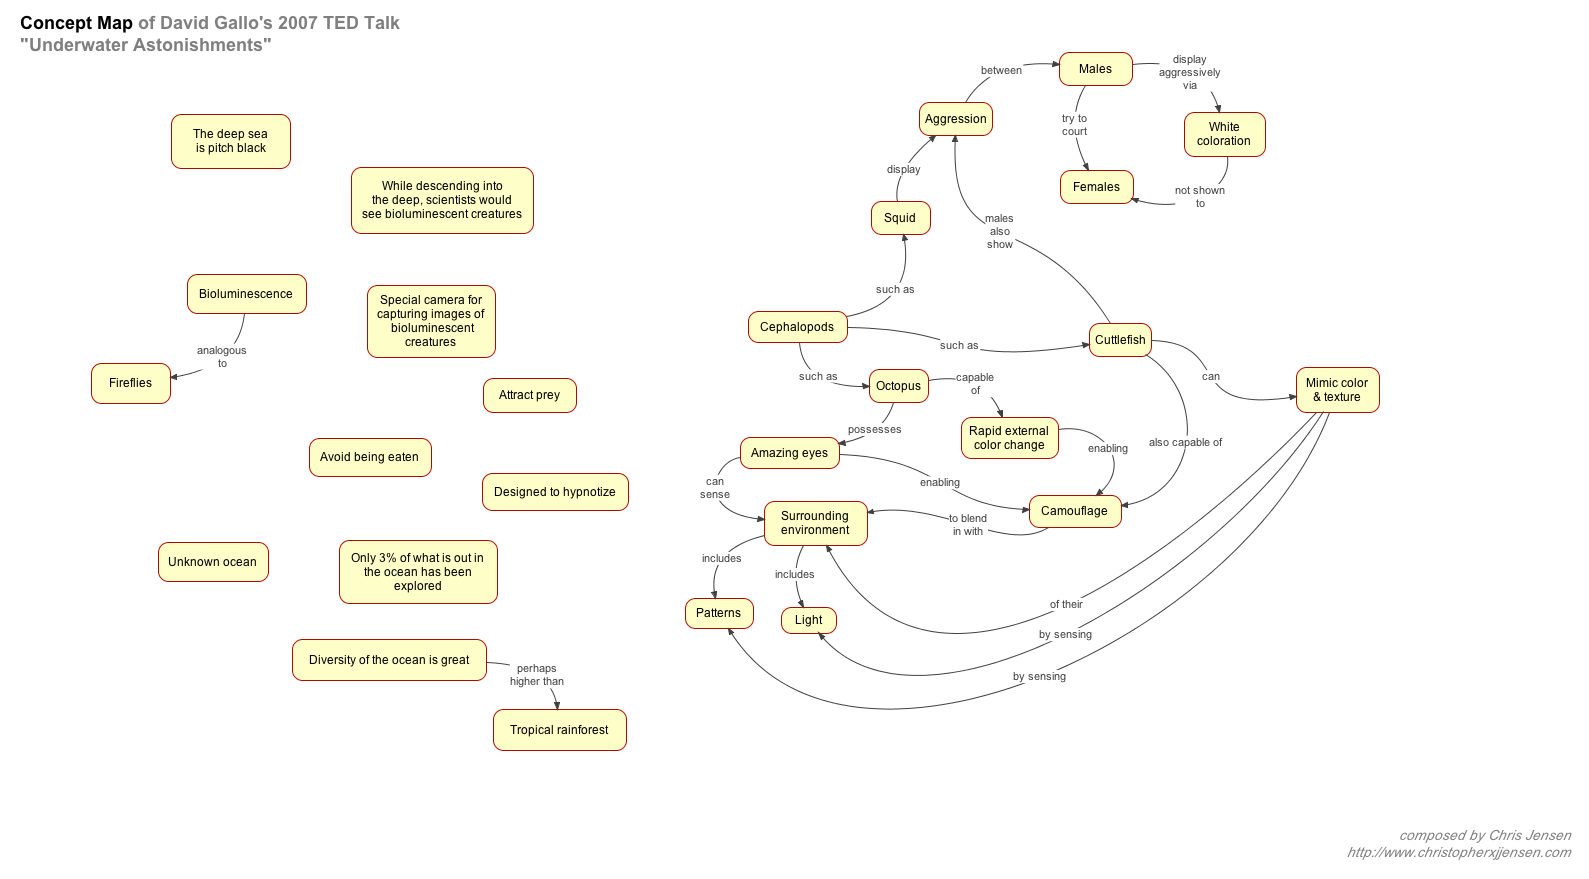 How To Construct A Concept Map.Concept Mapping As A Creative Tool Christopher X J Jensen